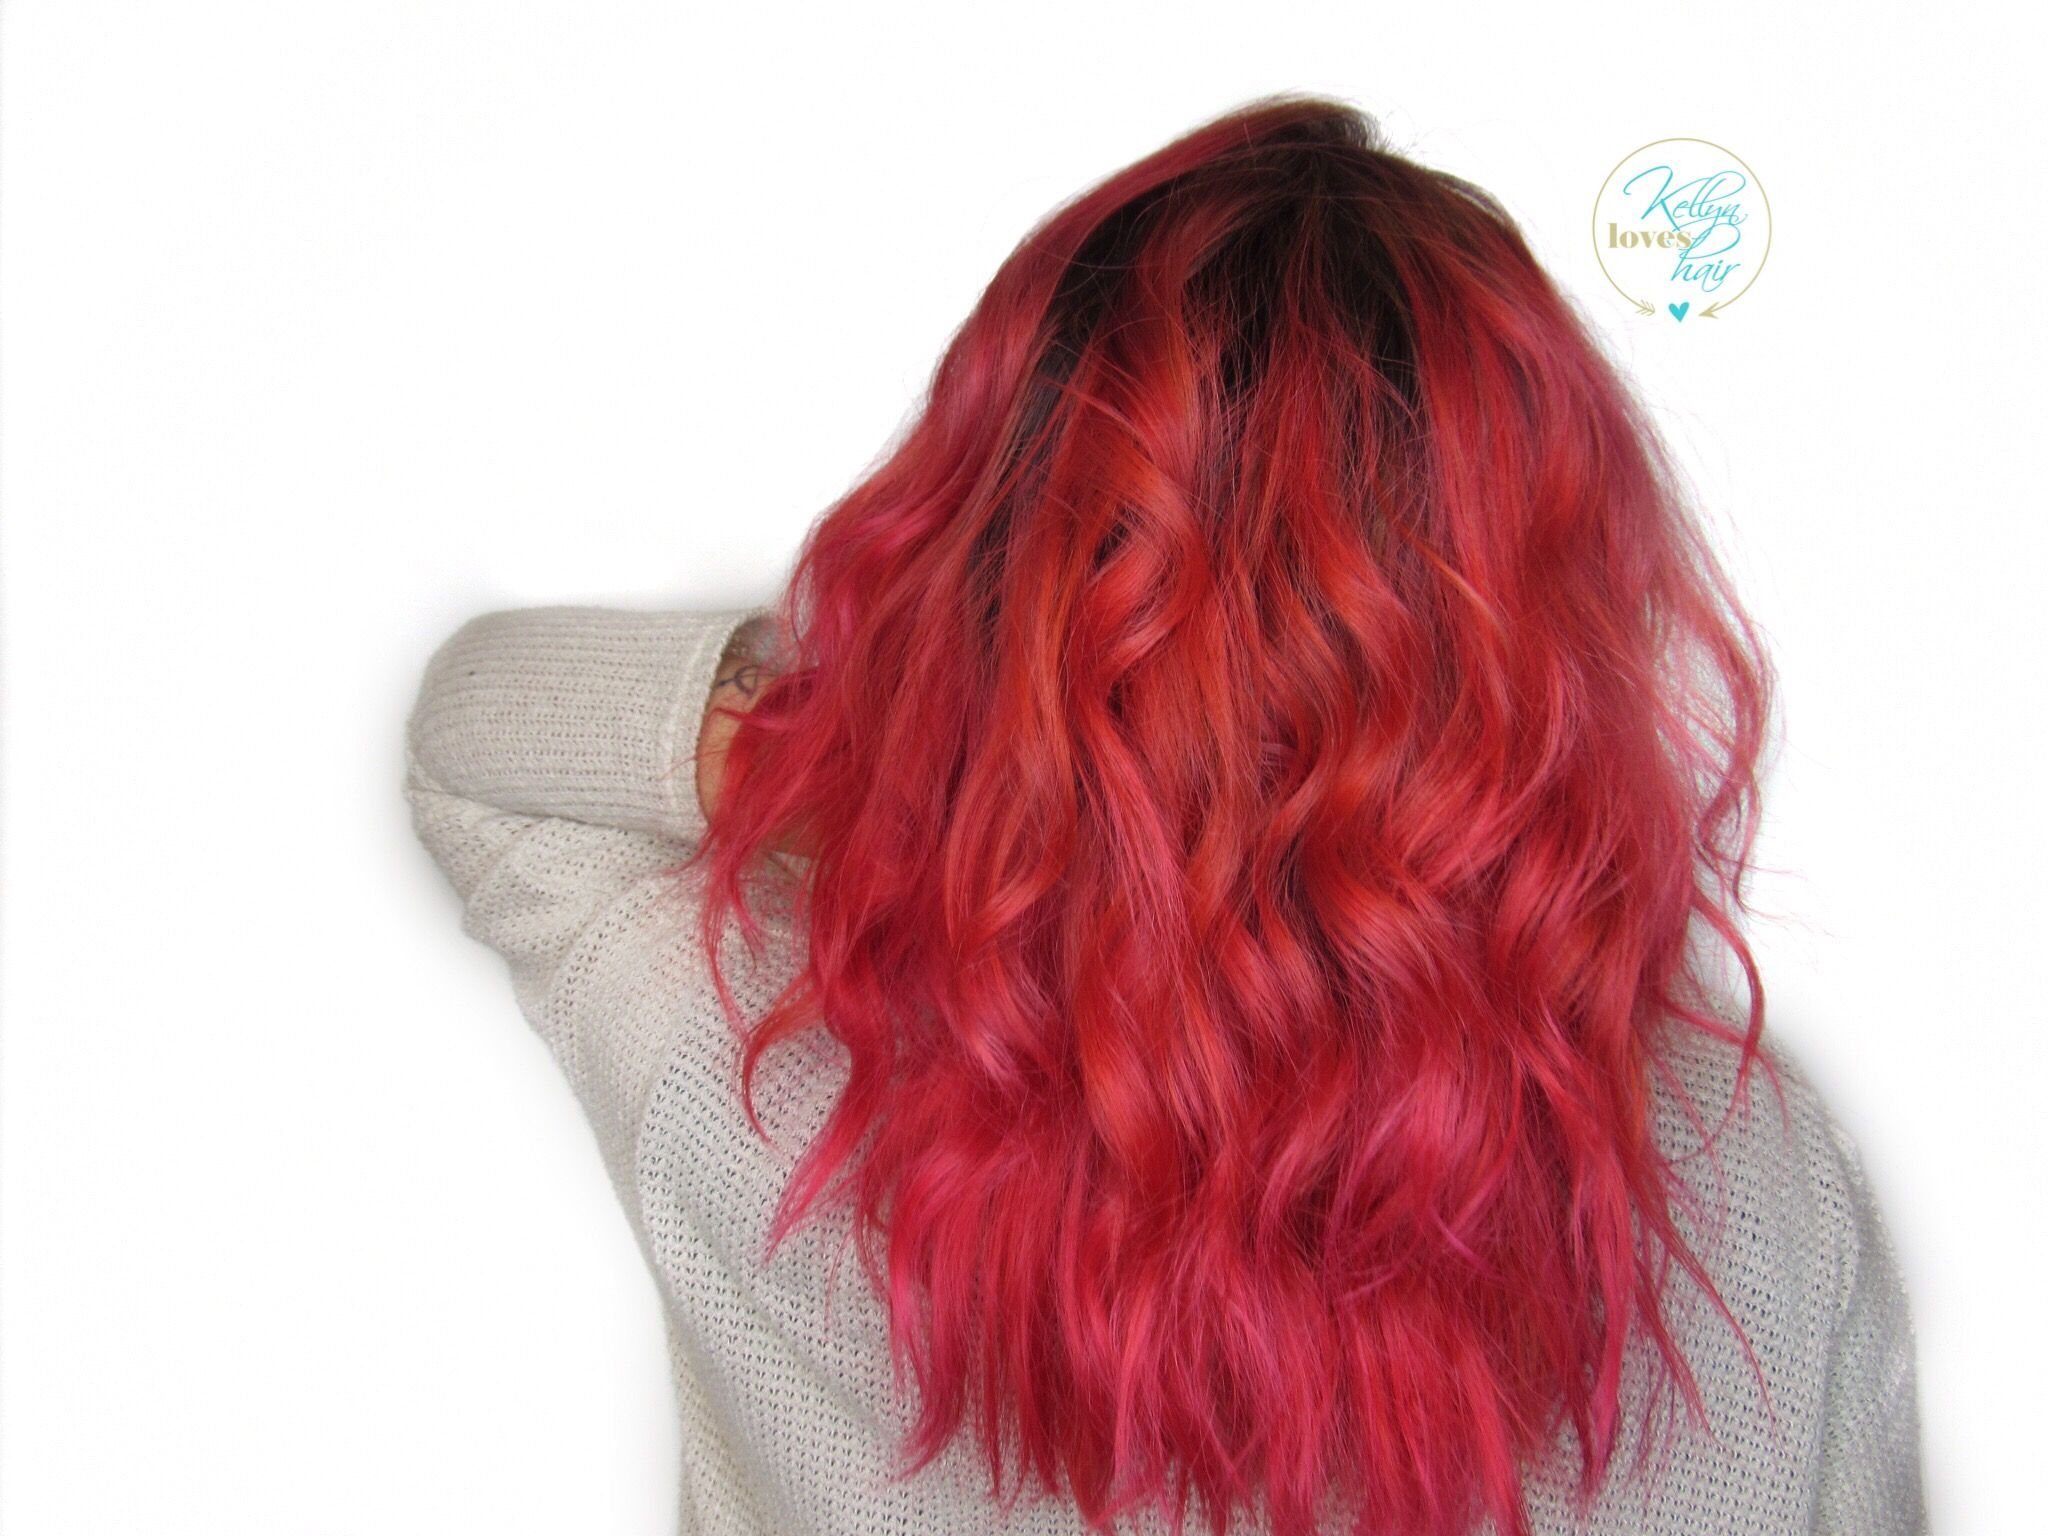 Blonde Hair With Vivid Color Mix Of Pink Orange And Red By Kellyn At Bow Arrow North End Boston At Www Bowand Vivid Hair Color Long Hair Styles Hair Art